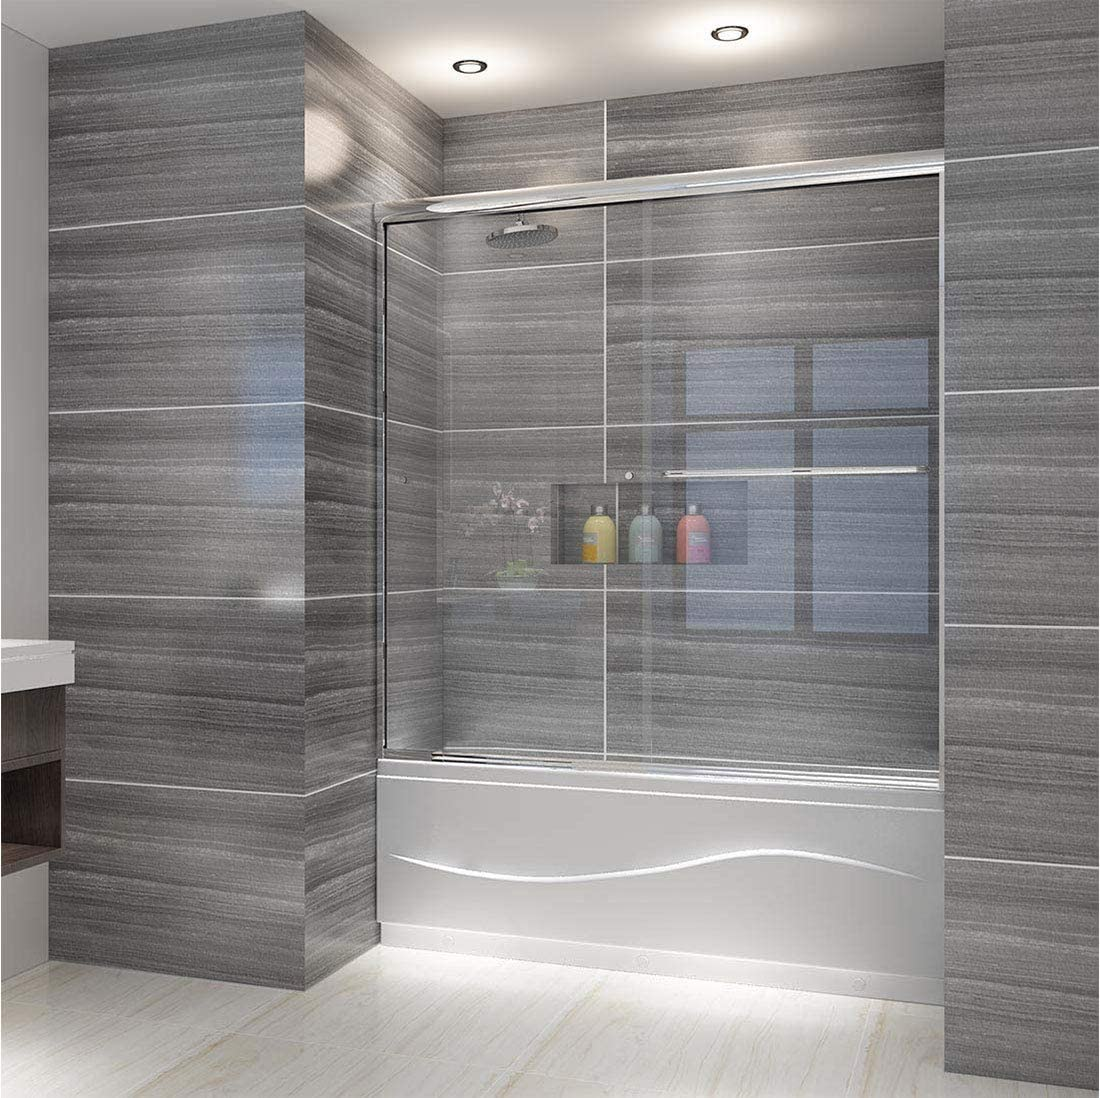 ELEGANT Bypass Double Sliding Tub Shower Door, 60 in. W x 62 in. H Bathtub Sliding Door, 1 4 inch Clear Glass Panel, 1.5 in. Width Adjustment, Chrome Finish